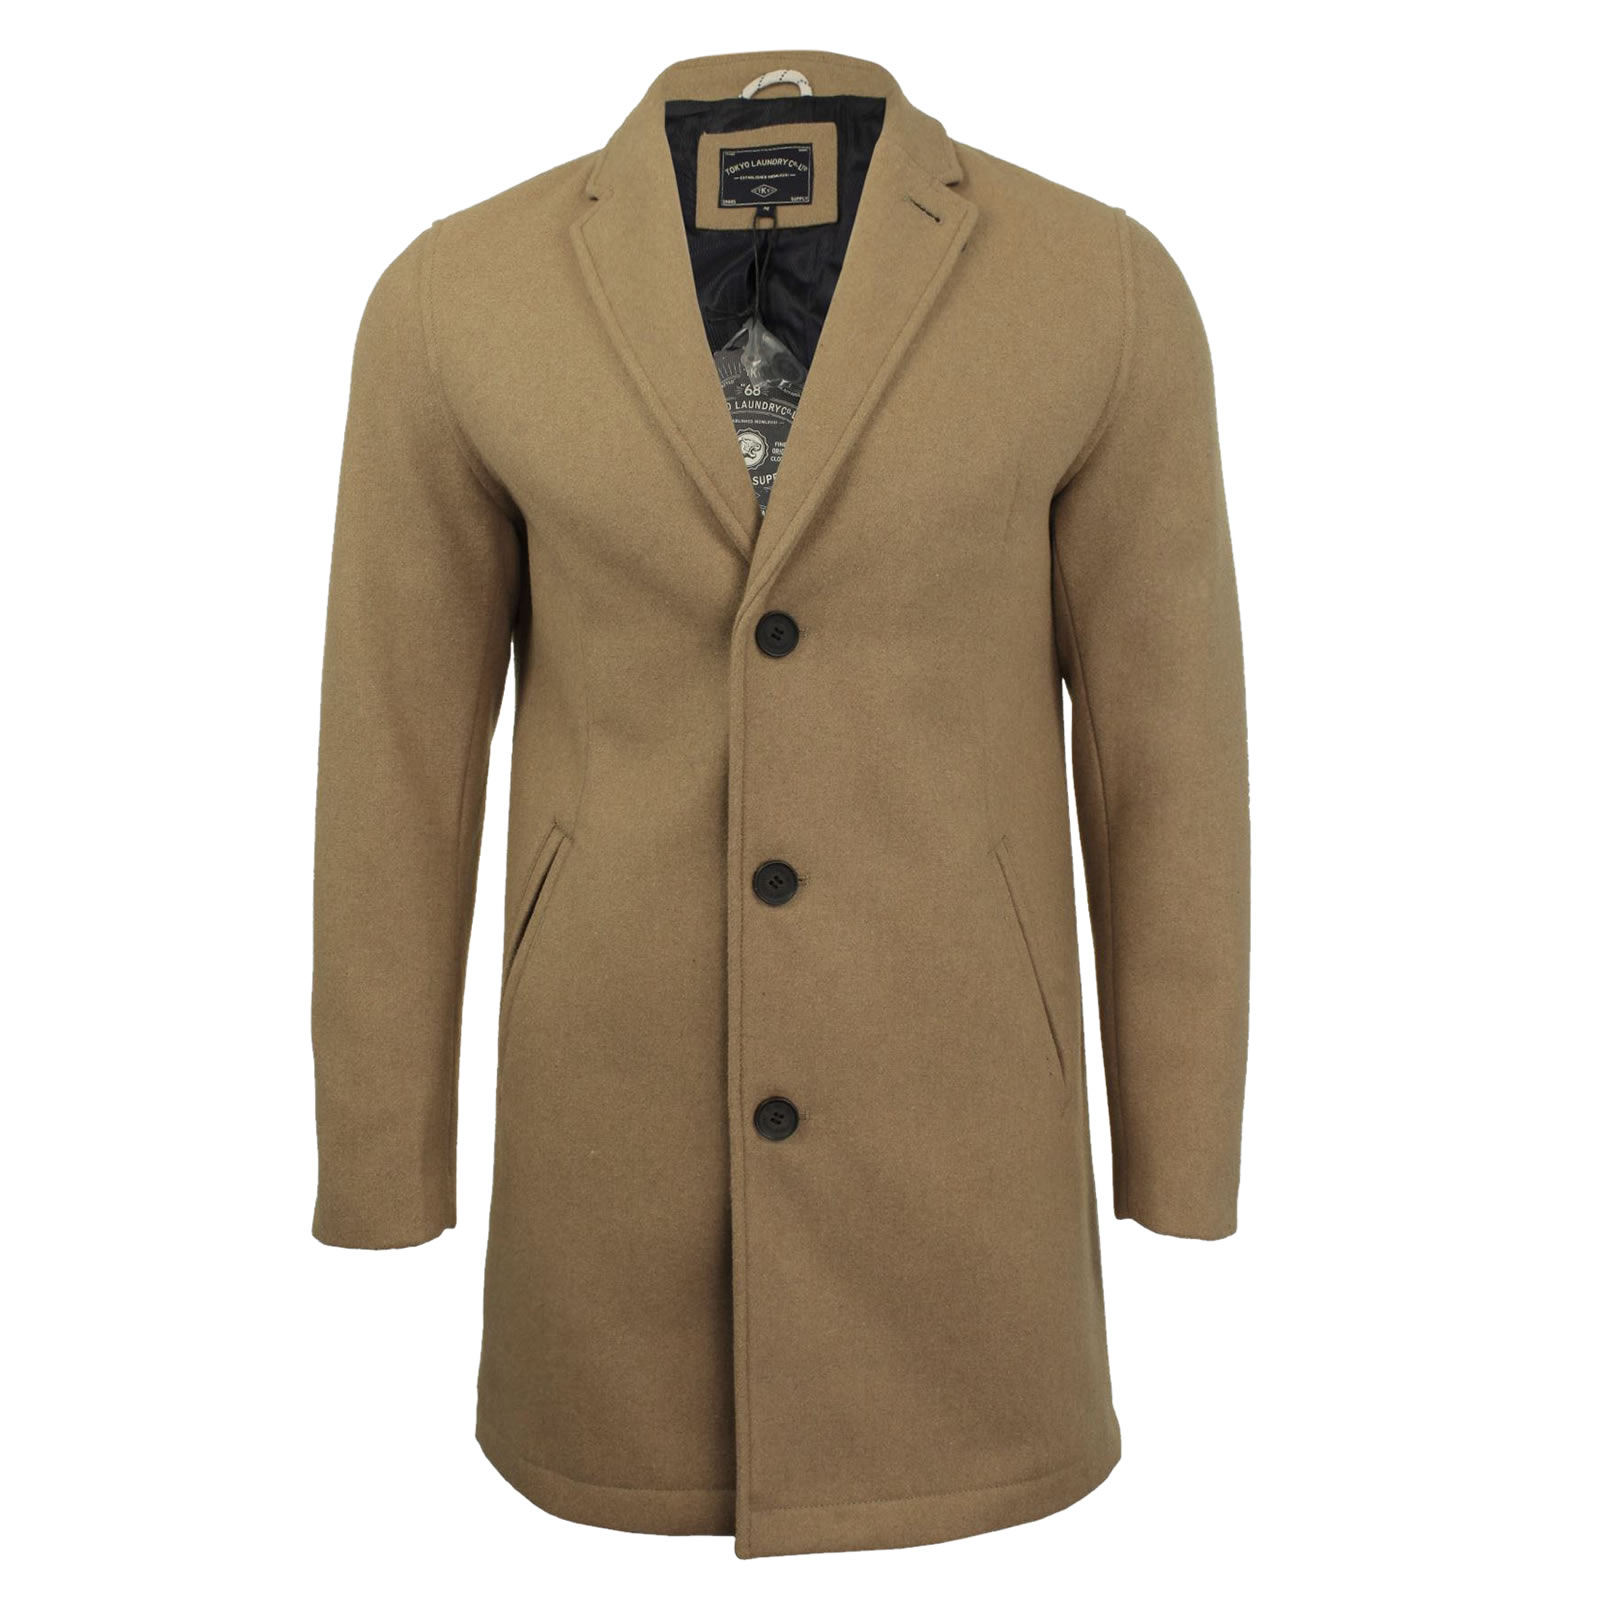 Coats Wool Men. Men Men. Shop Coats & Jackets Wool Online on YOOX United States. Exclusive selection of Italian and international designer. Fast Delivery. Secure payments.